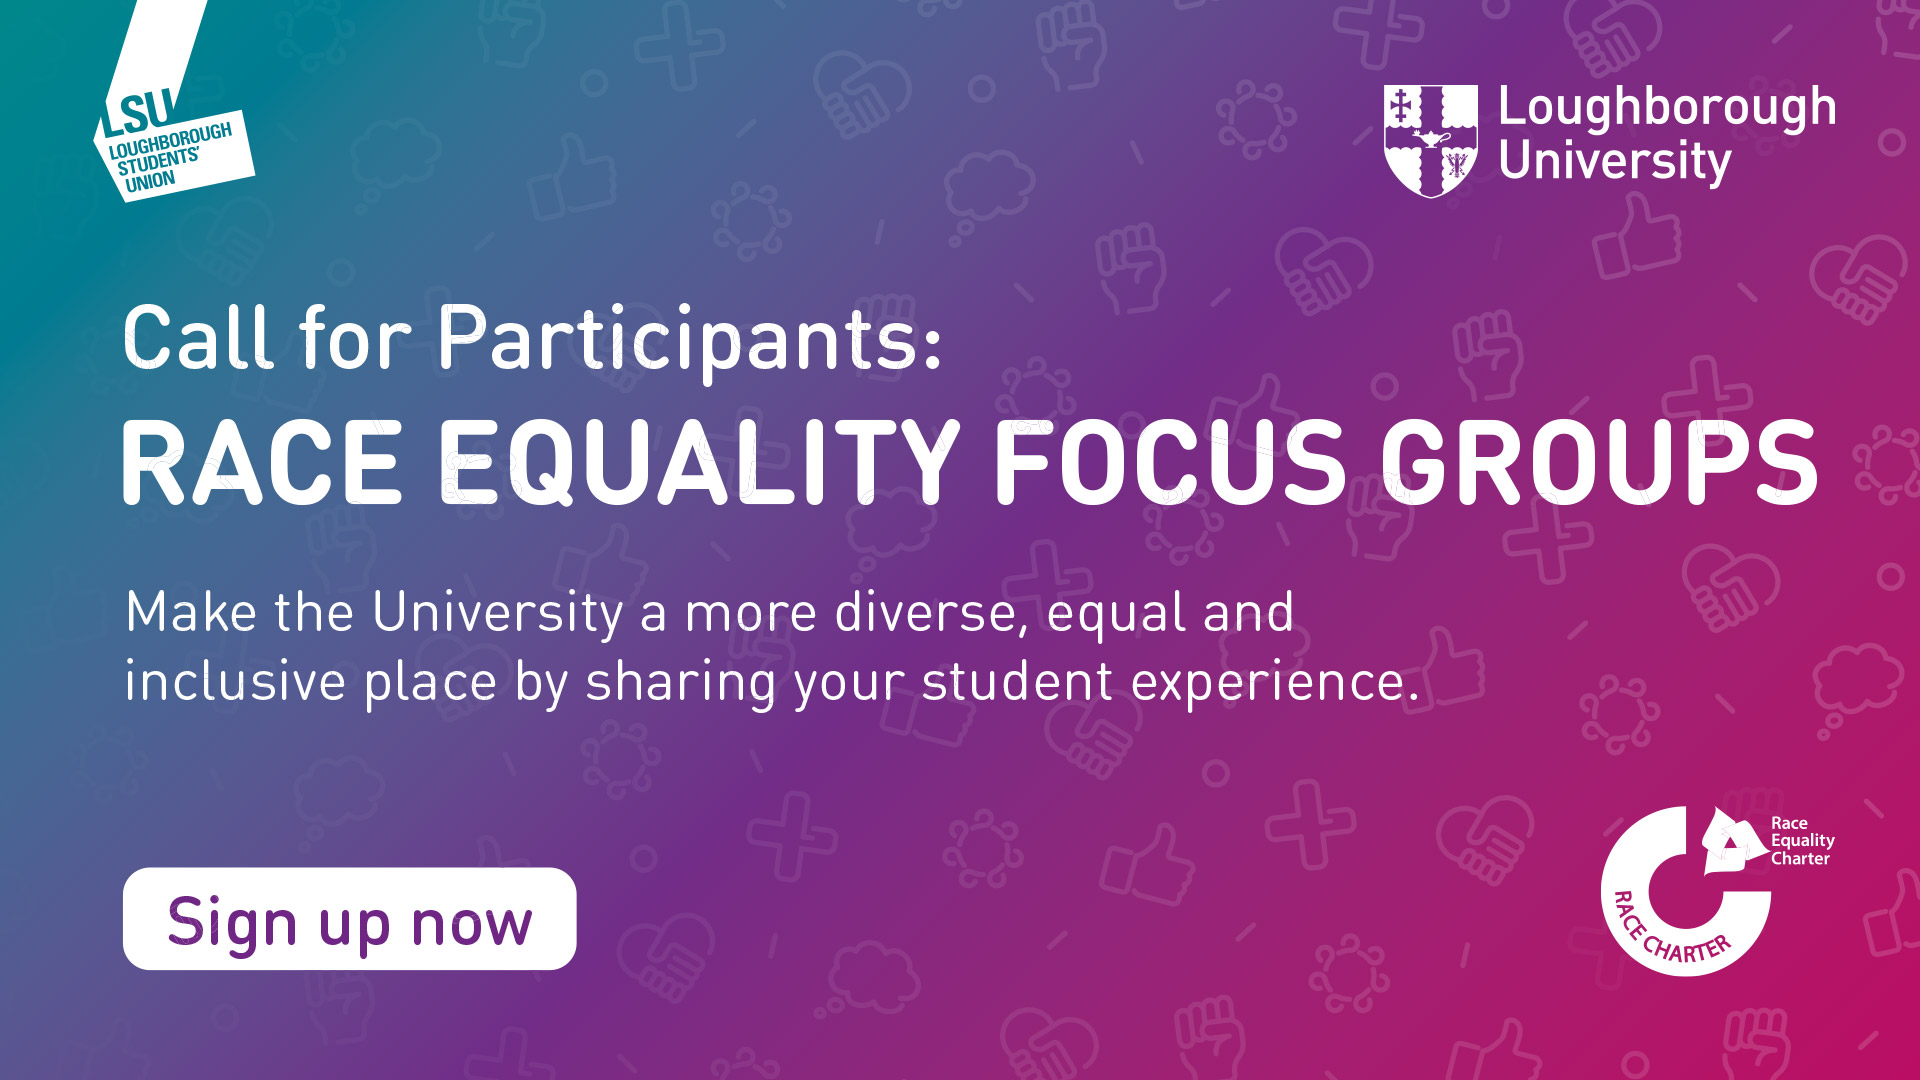 Call for participants: Student focus groups on Race Equality